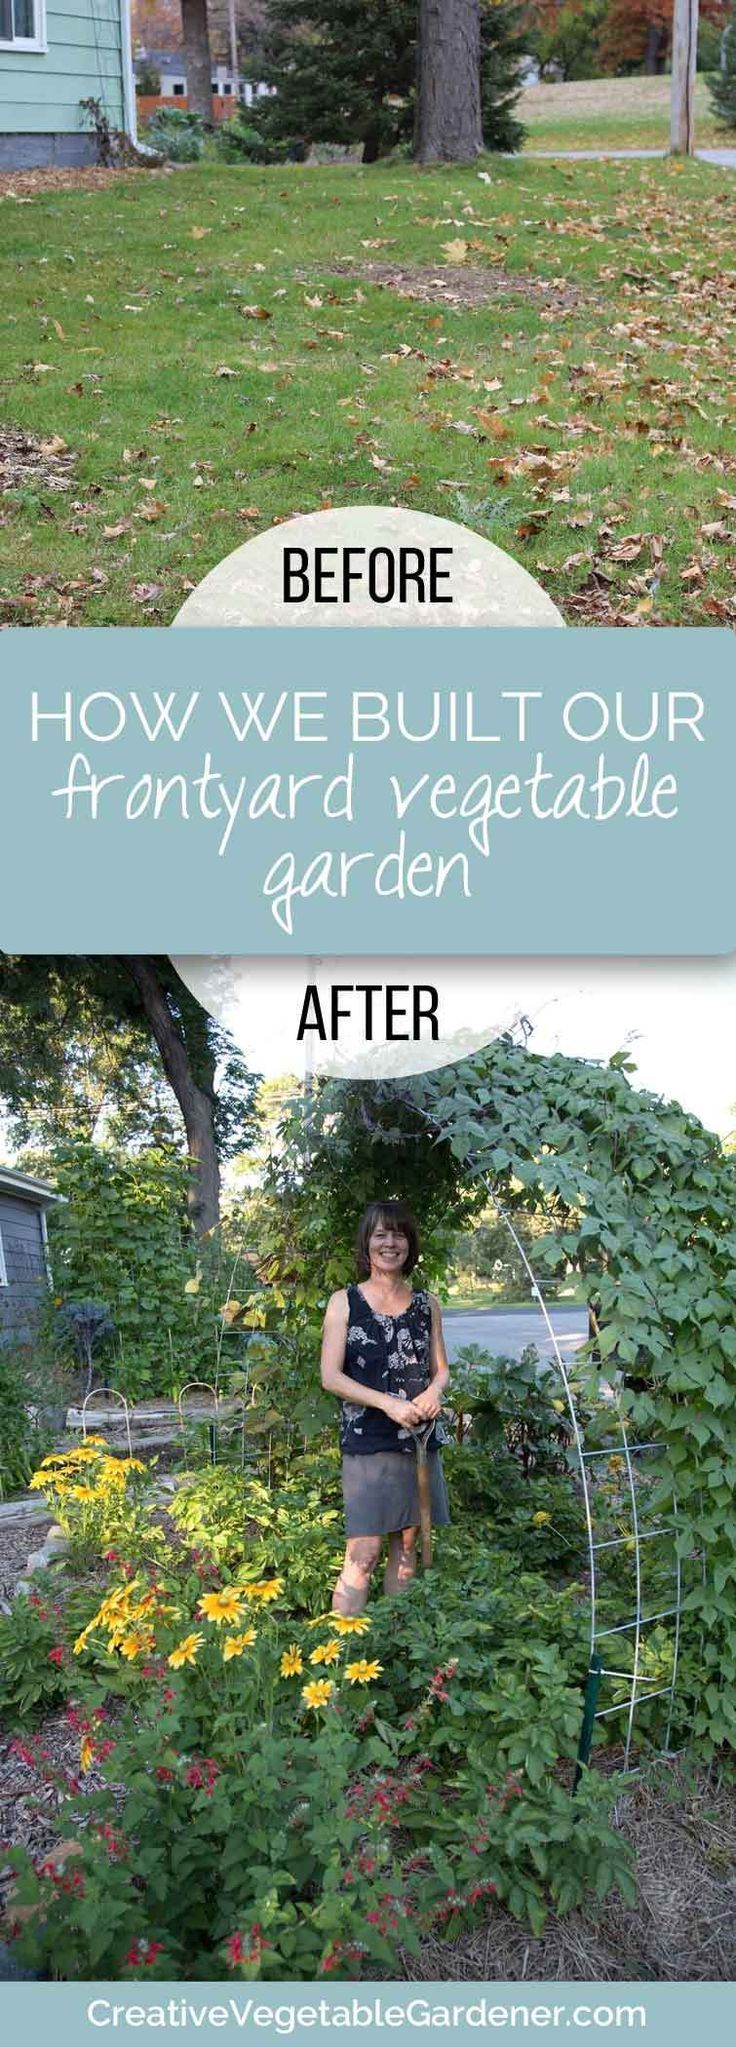 how we turned our boring front yard into a vegetable garden bursting with good food and